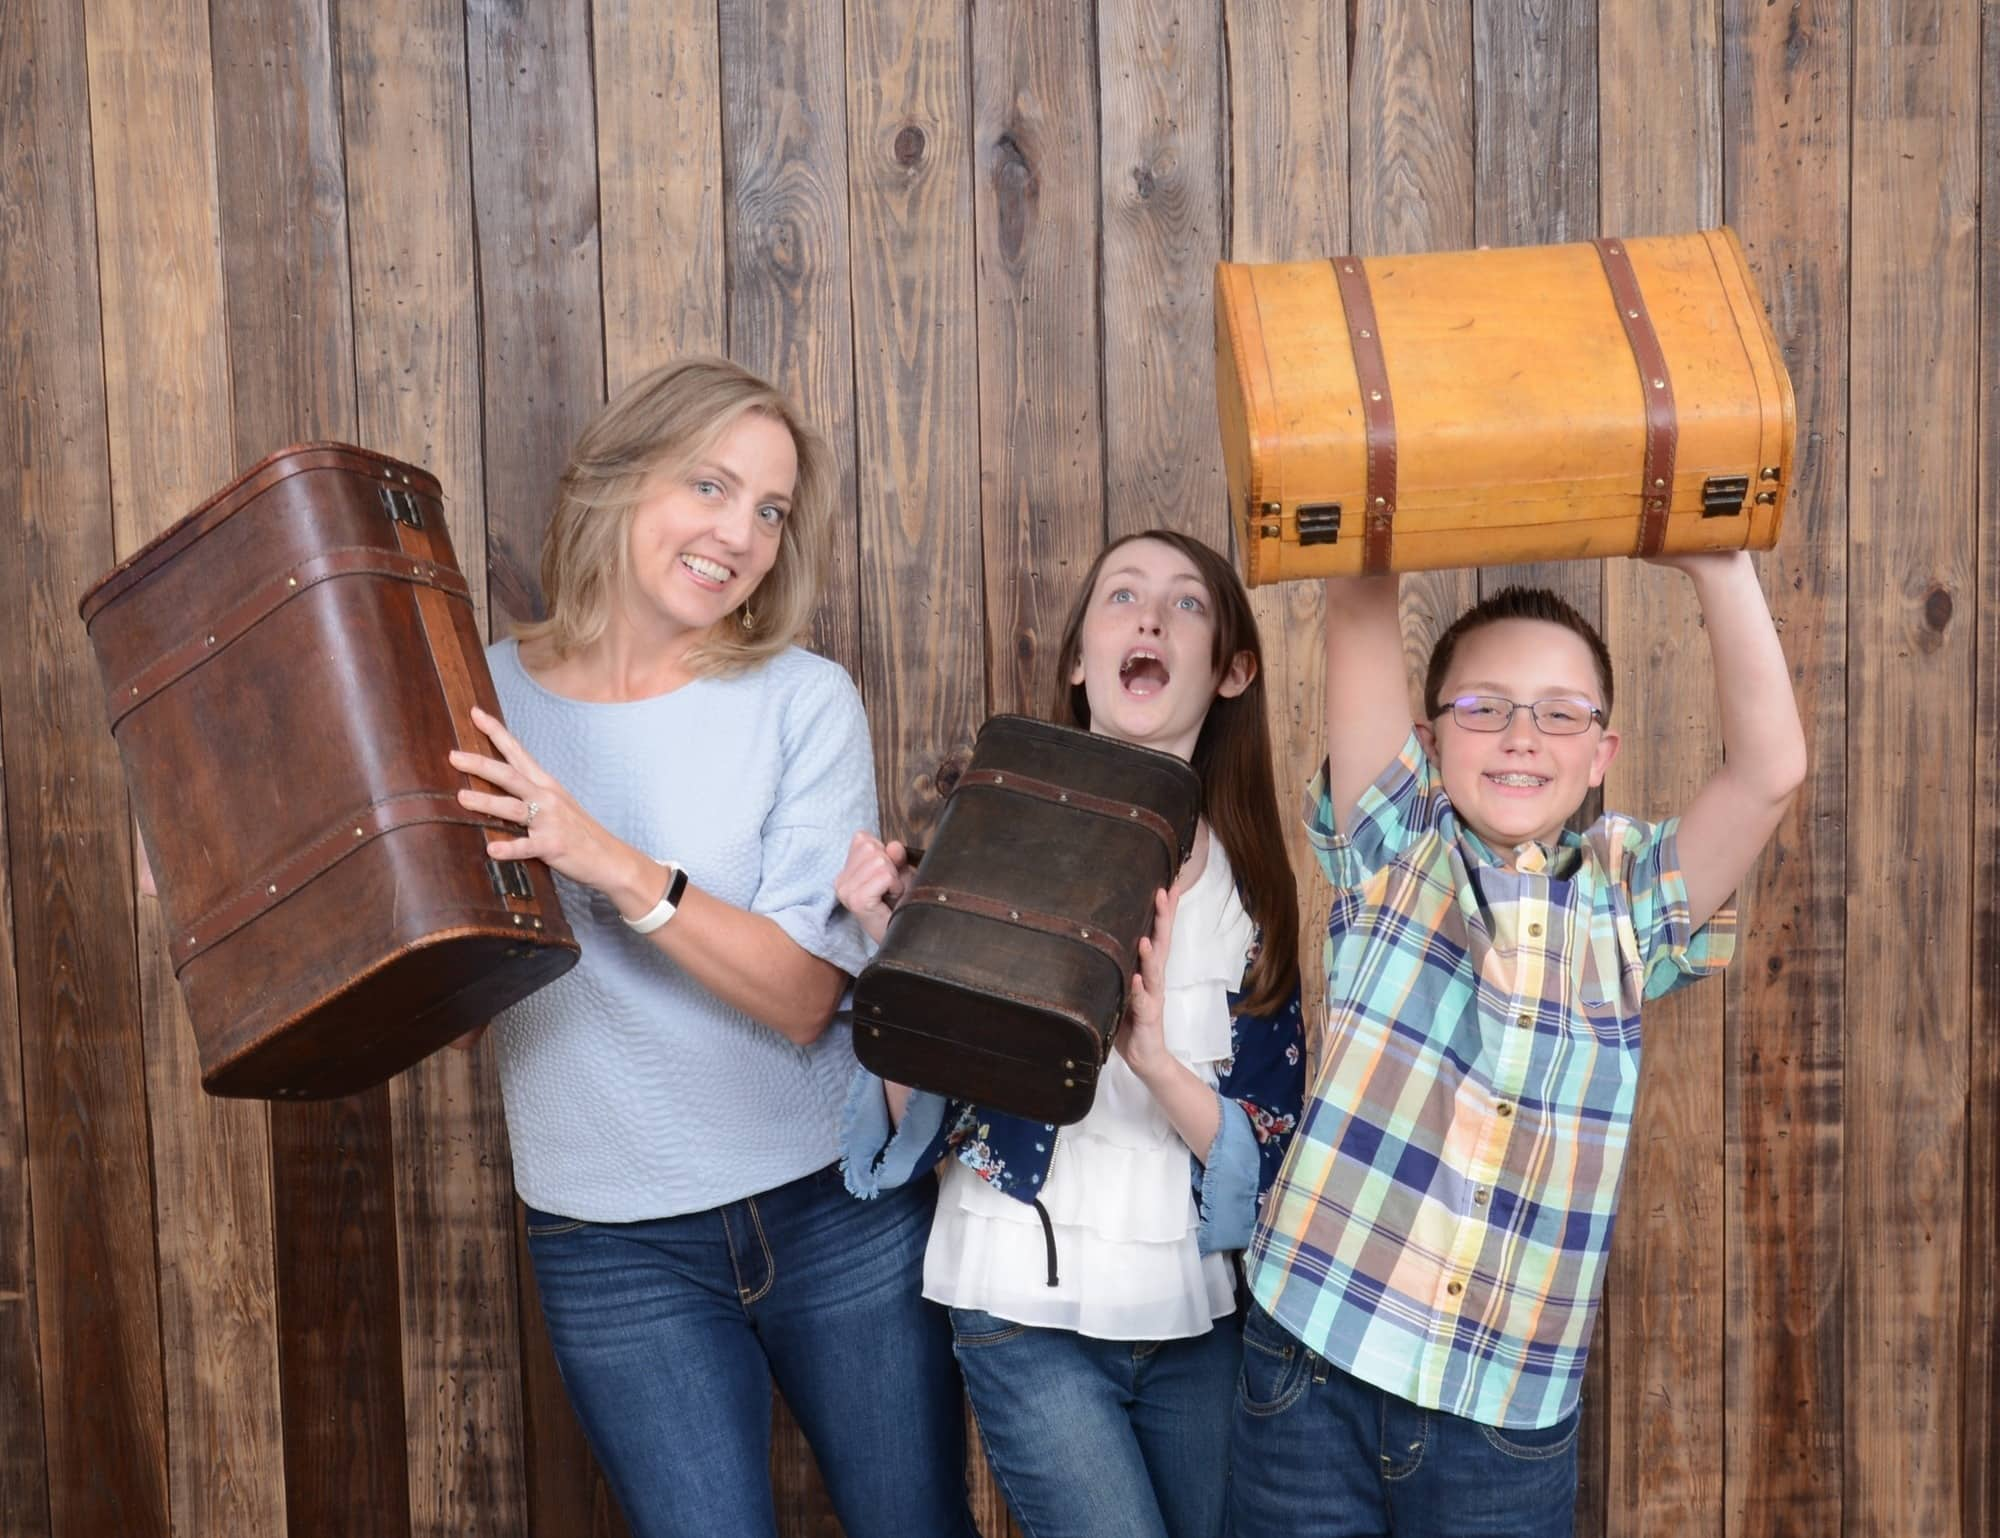 As The Travel Mama, I just had to get a shot with the suitcase props at Portrait Studio